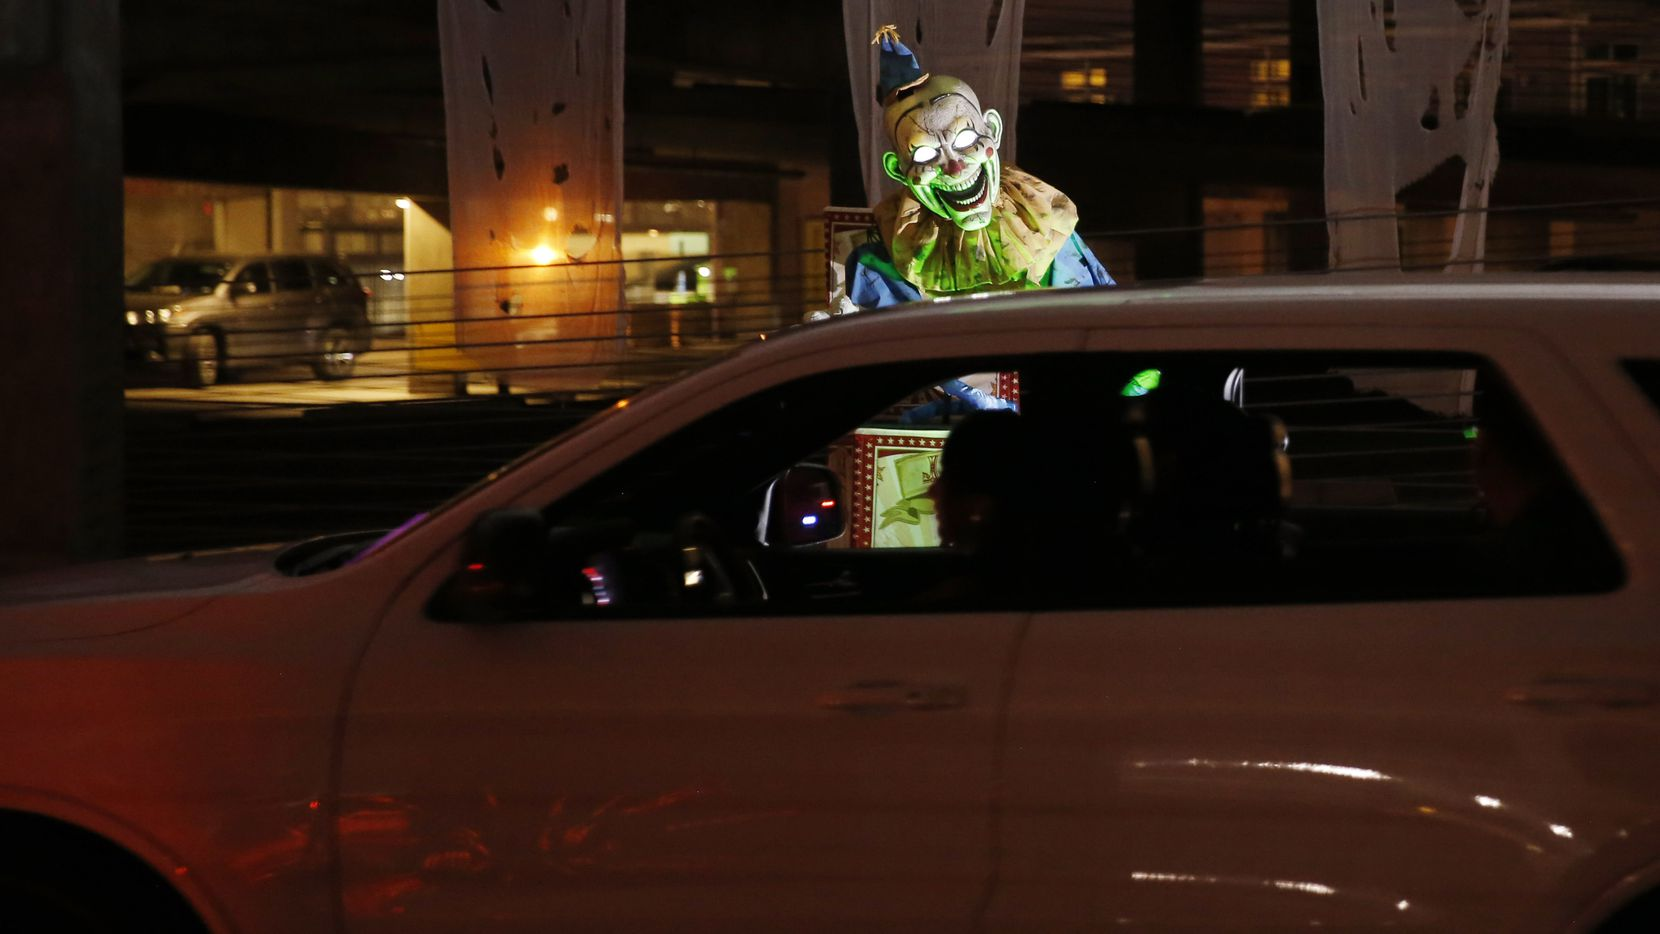 Drivers make their way through the garage during Drive Boo Halloween at American Airlines Center Silver parking garage.